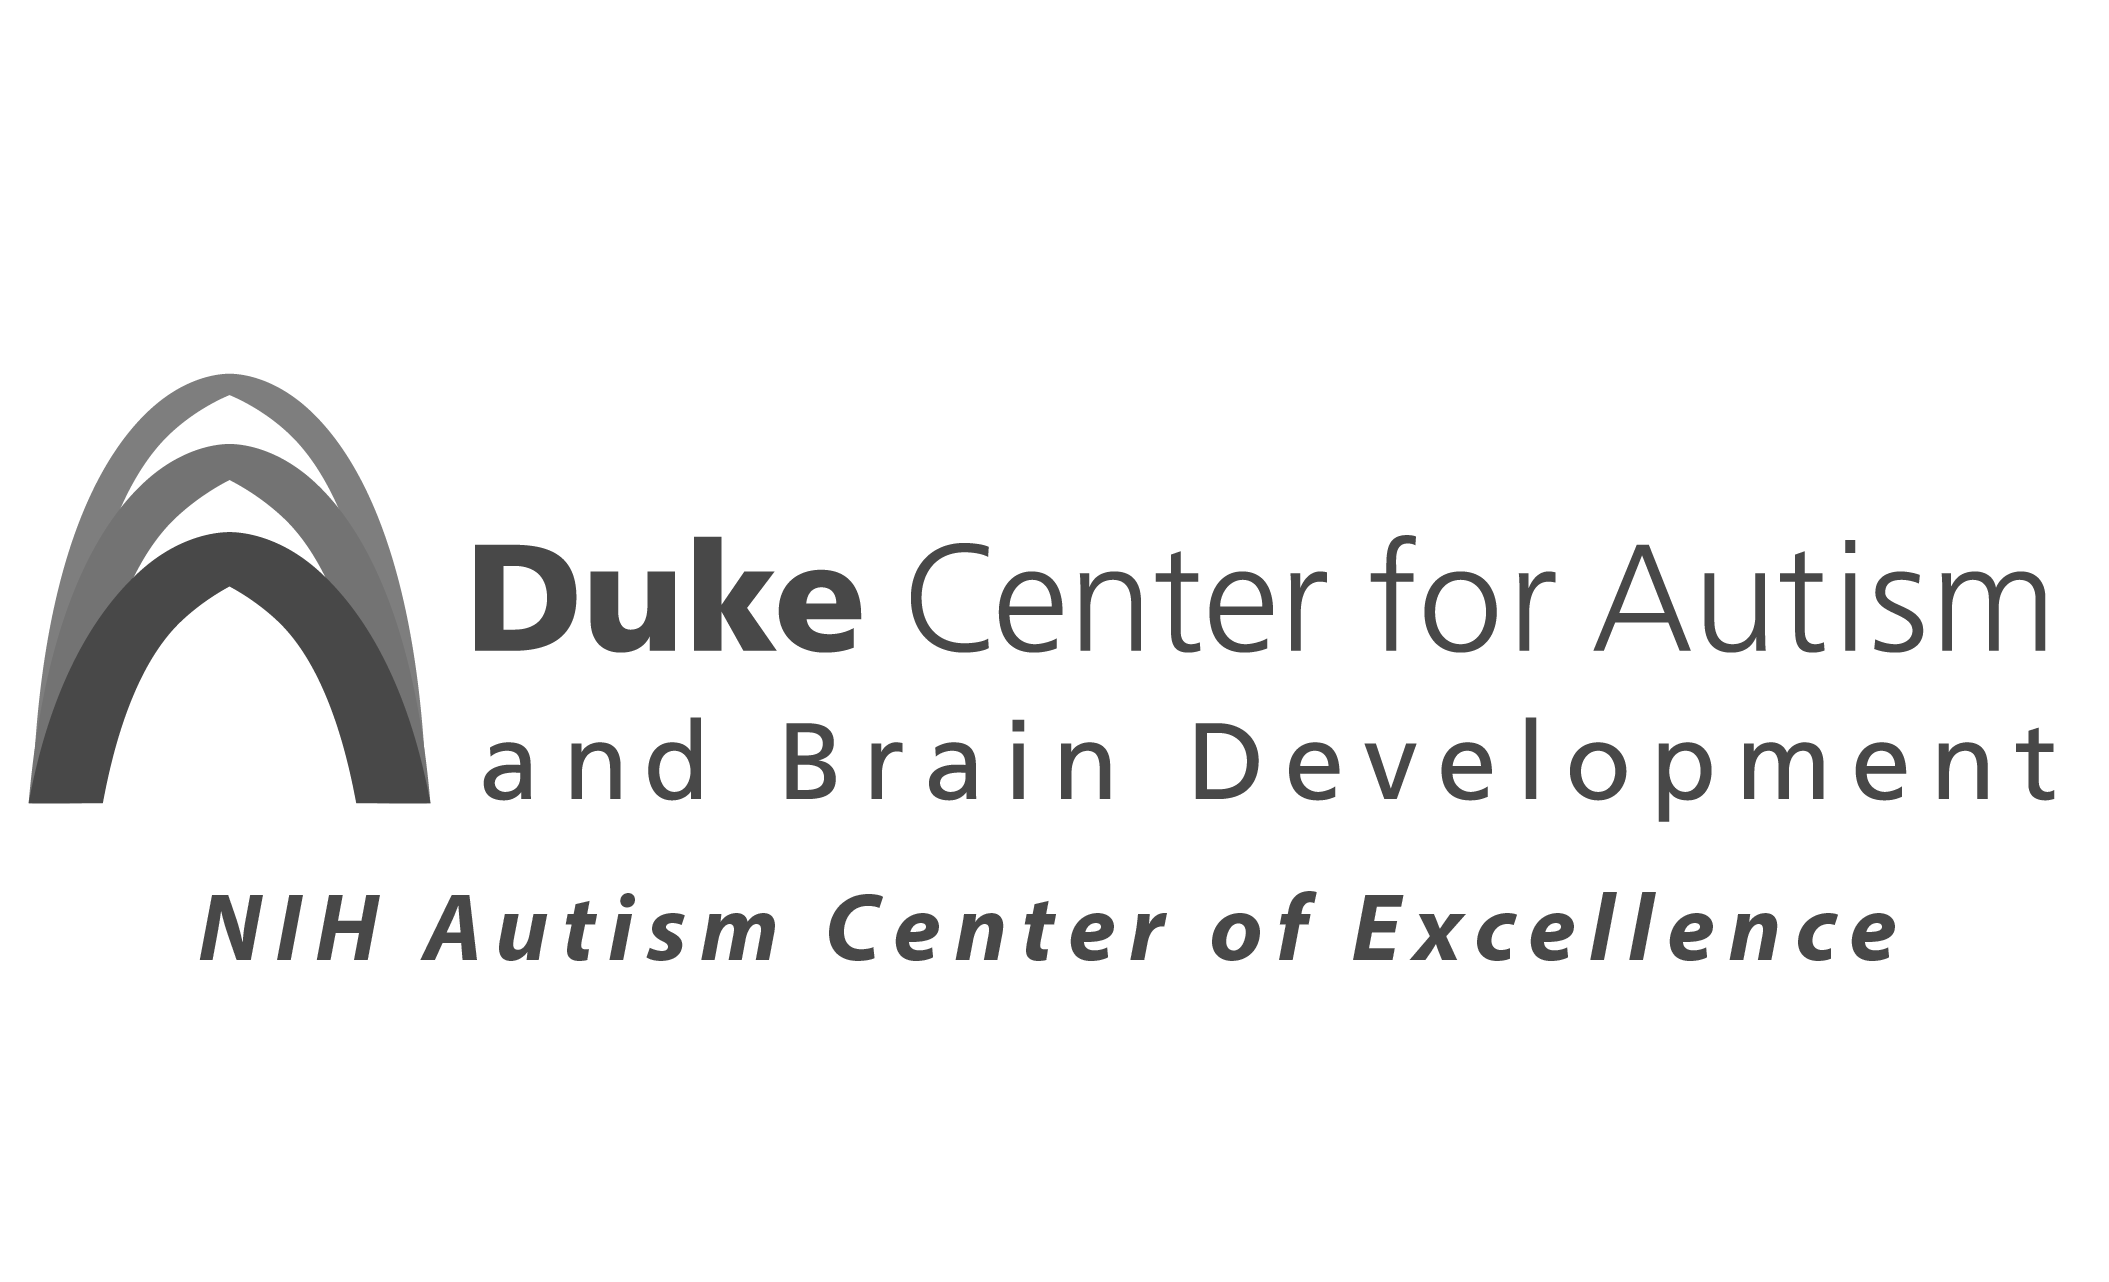 Duke Center for Autism and Brain Development, Converge Autism Summit, Greenville, SC